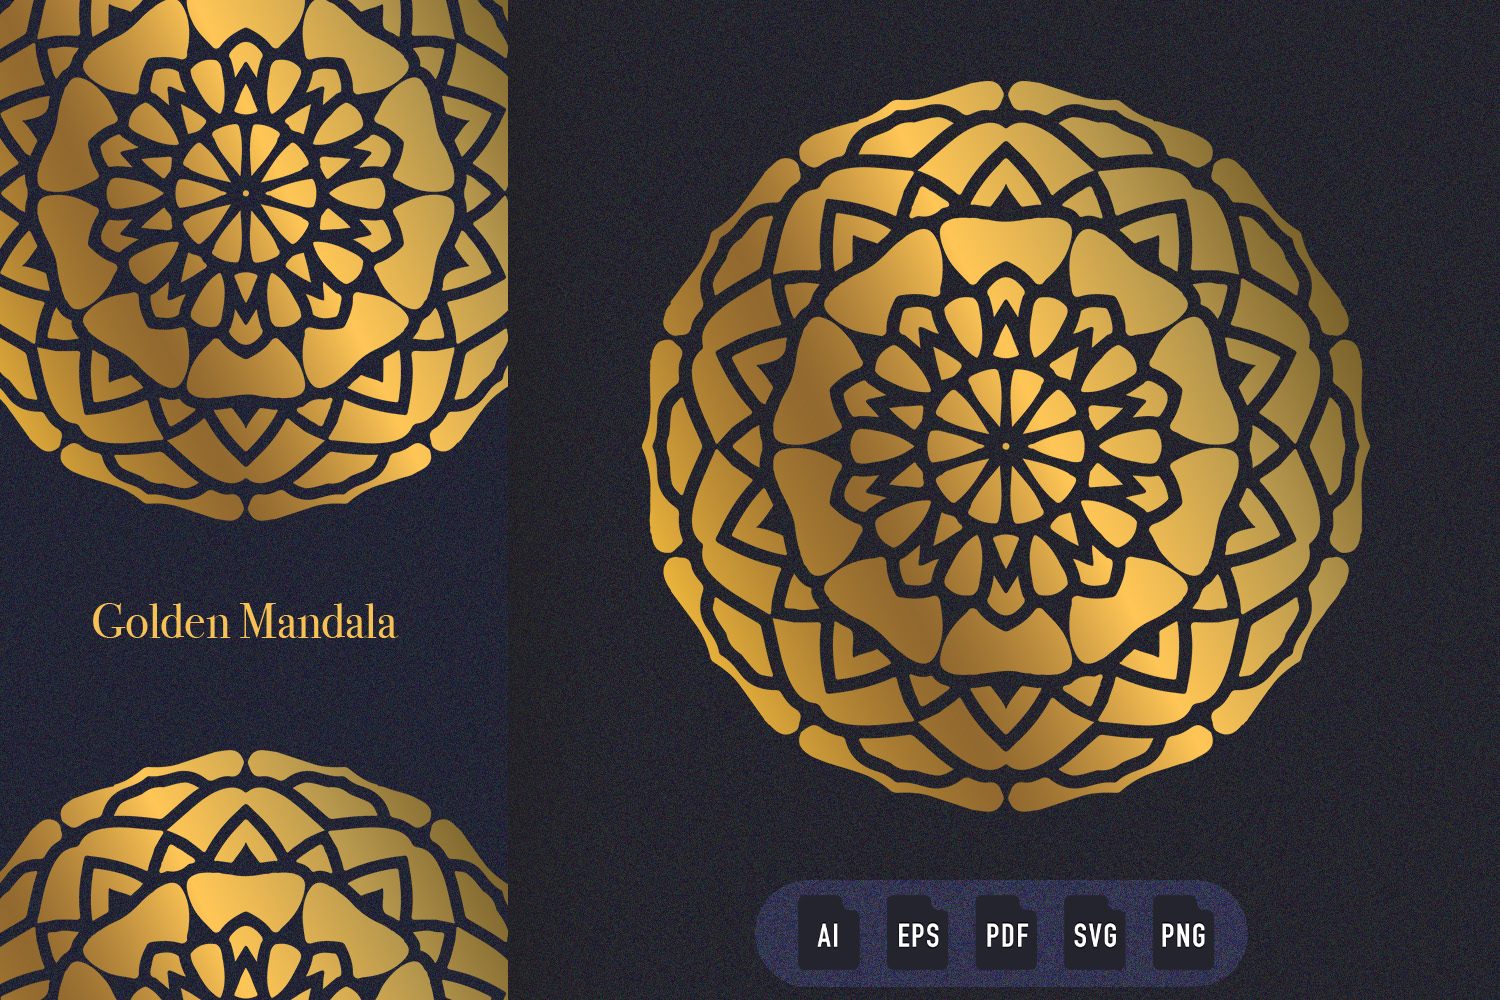 Download Free Golden Mandala Art 05 Graphic By Dwikrisdiantoro9 Creative Fabrica for Cricut Explore, Silhouette and other cutting machines.